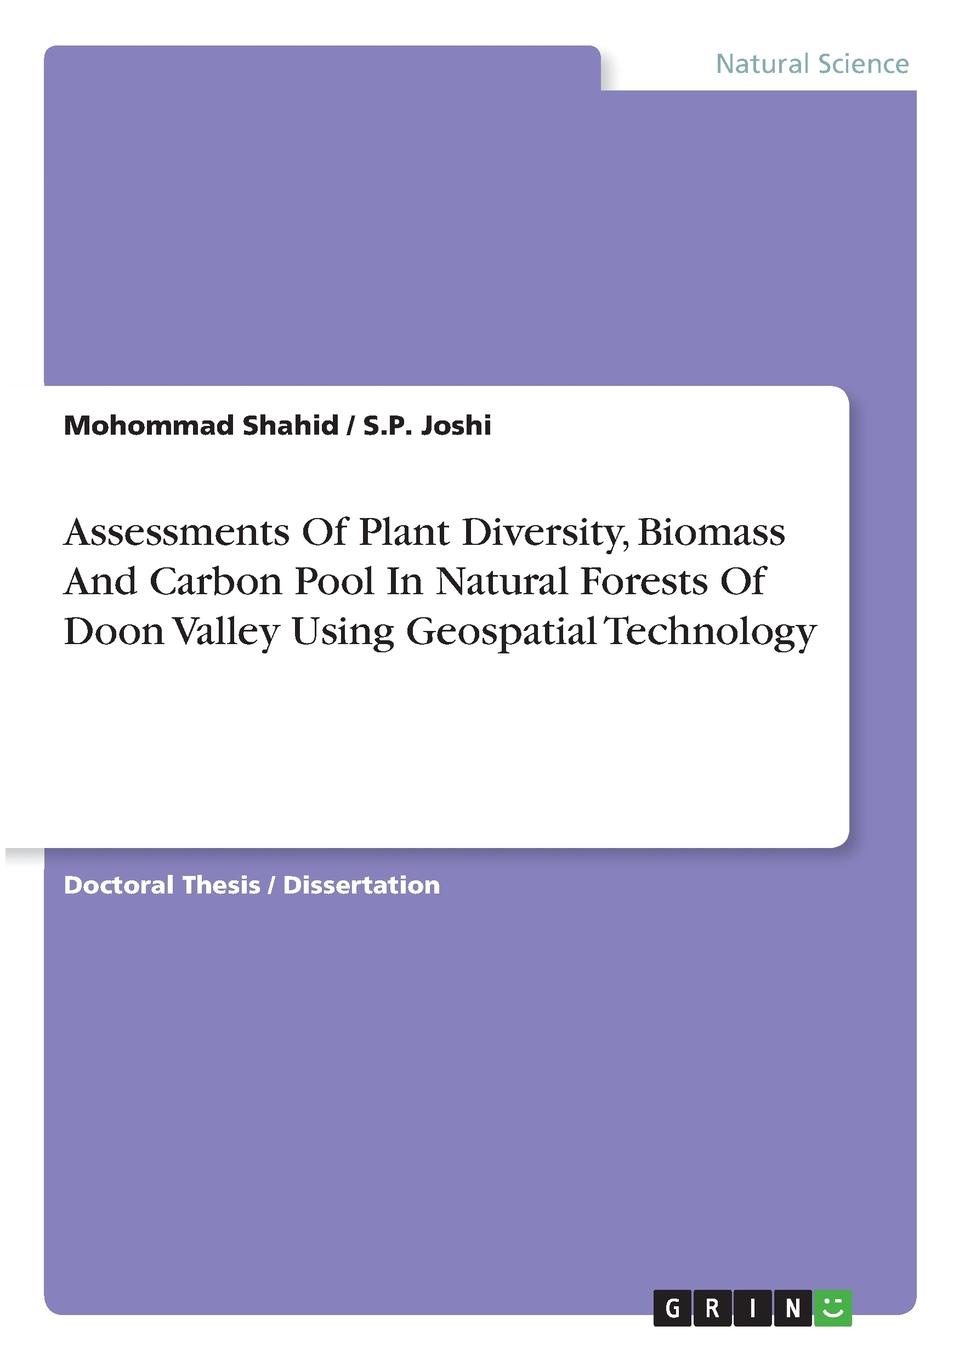 Mohommad Shahid, S.P. Joshi Assessments Of Plant Diversity, Biomass And Carbon Pool In Natural Forests Of Doon Valley Using Geospatial Technology цены